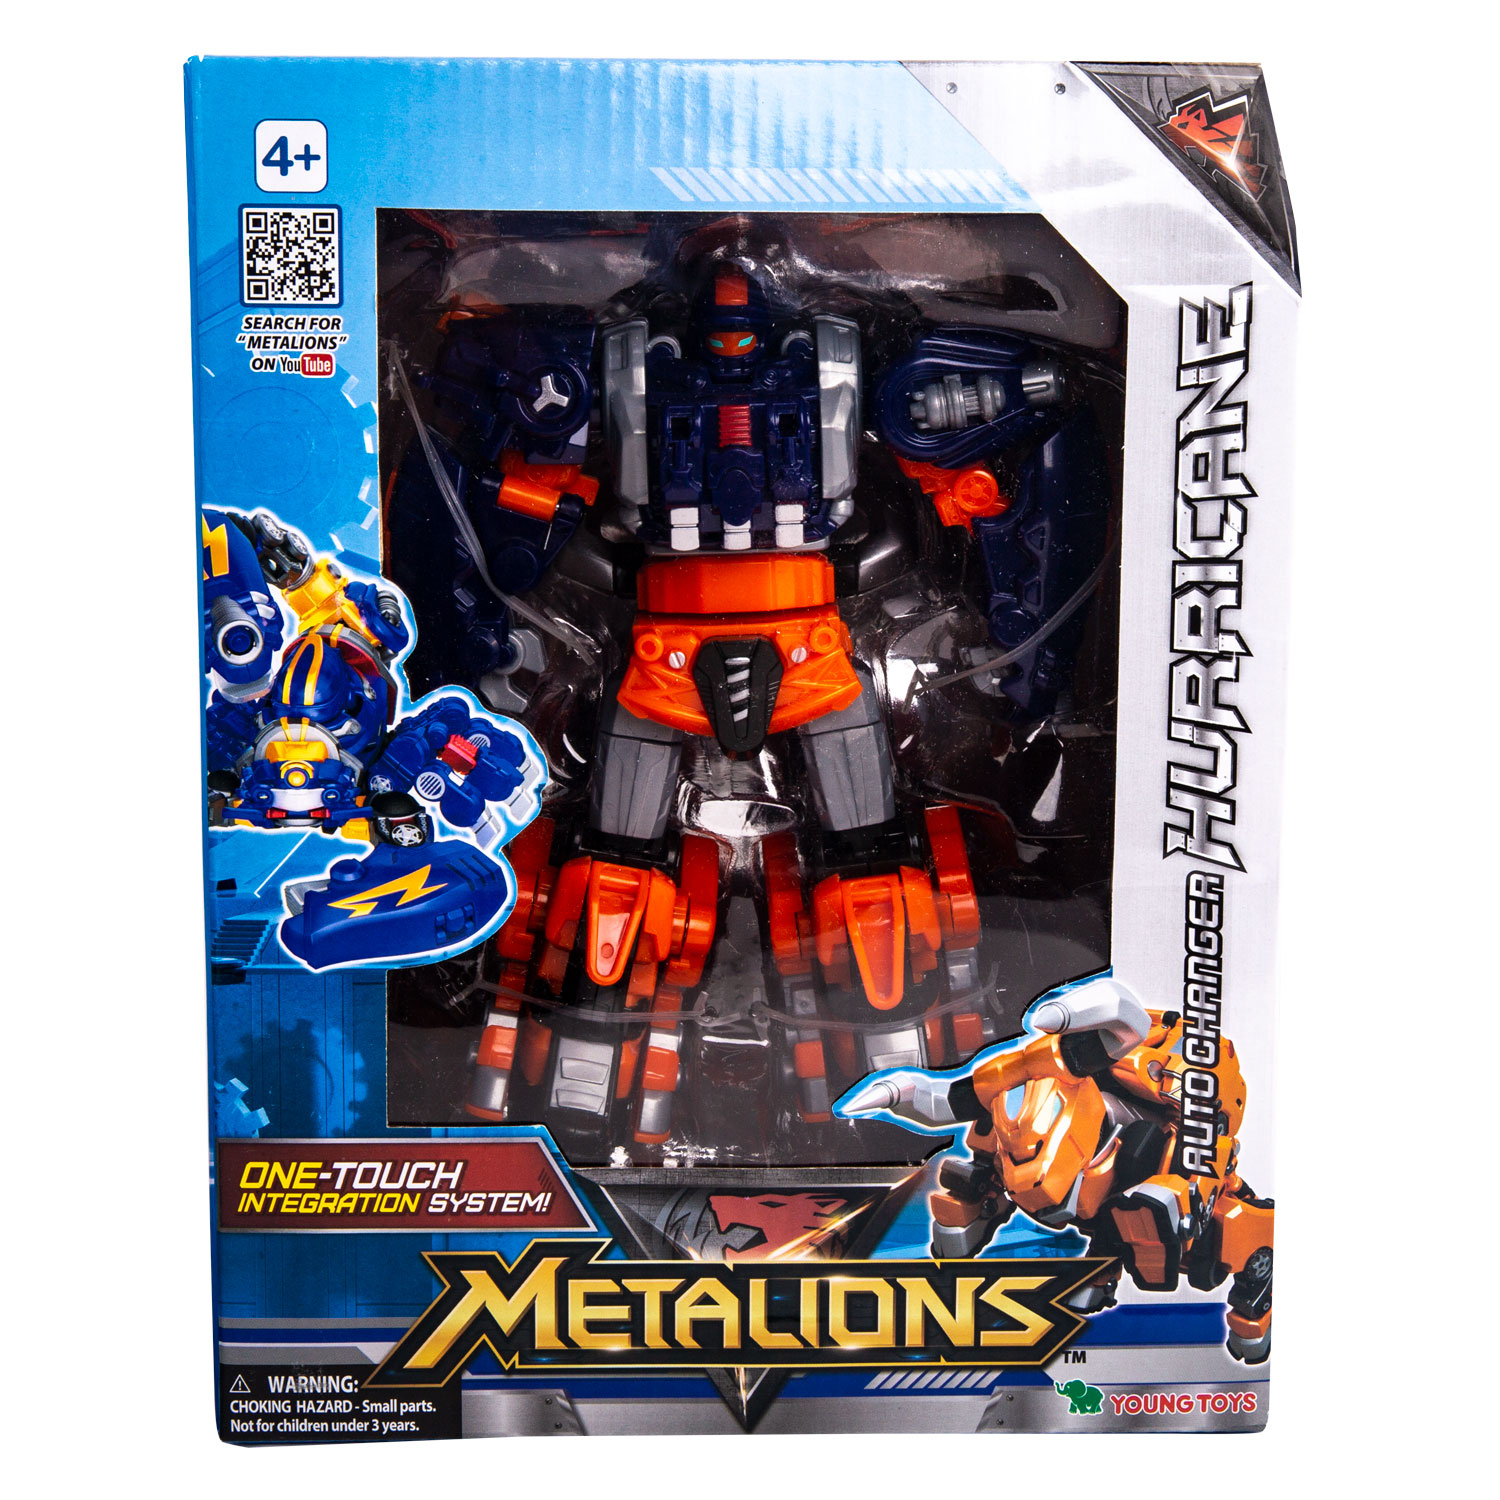 YOUNG TOYS METALIONS Auto-Changer Hurricane Action Figure